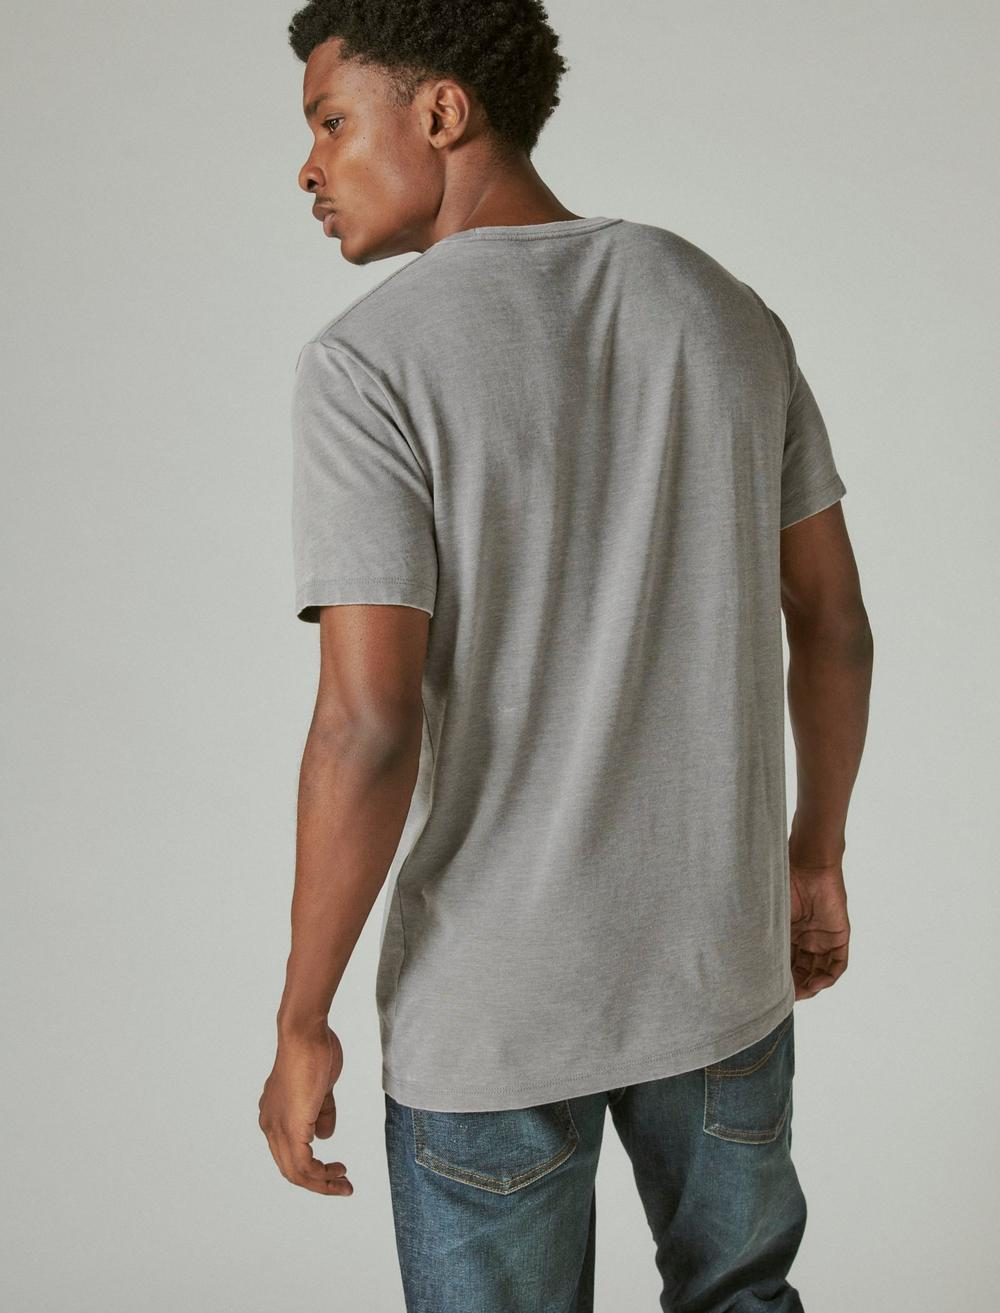 OLD FASHIONED GRAPHIC TEE, image 4